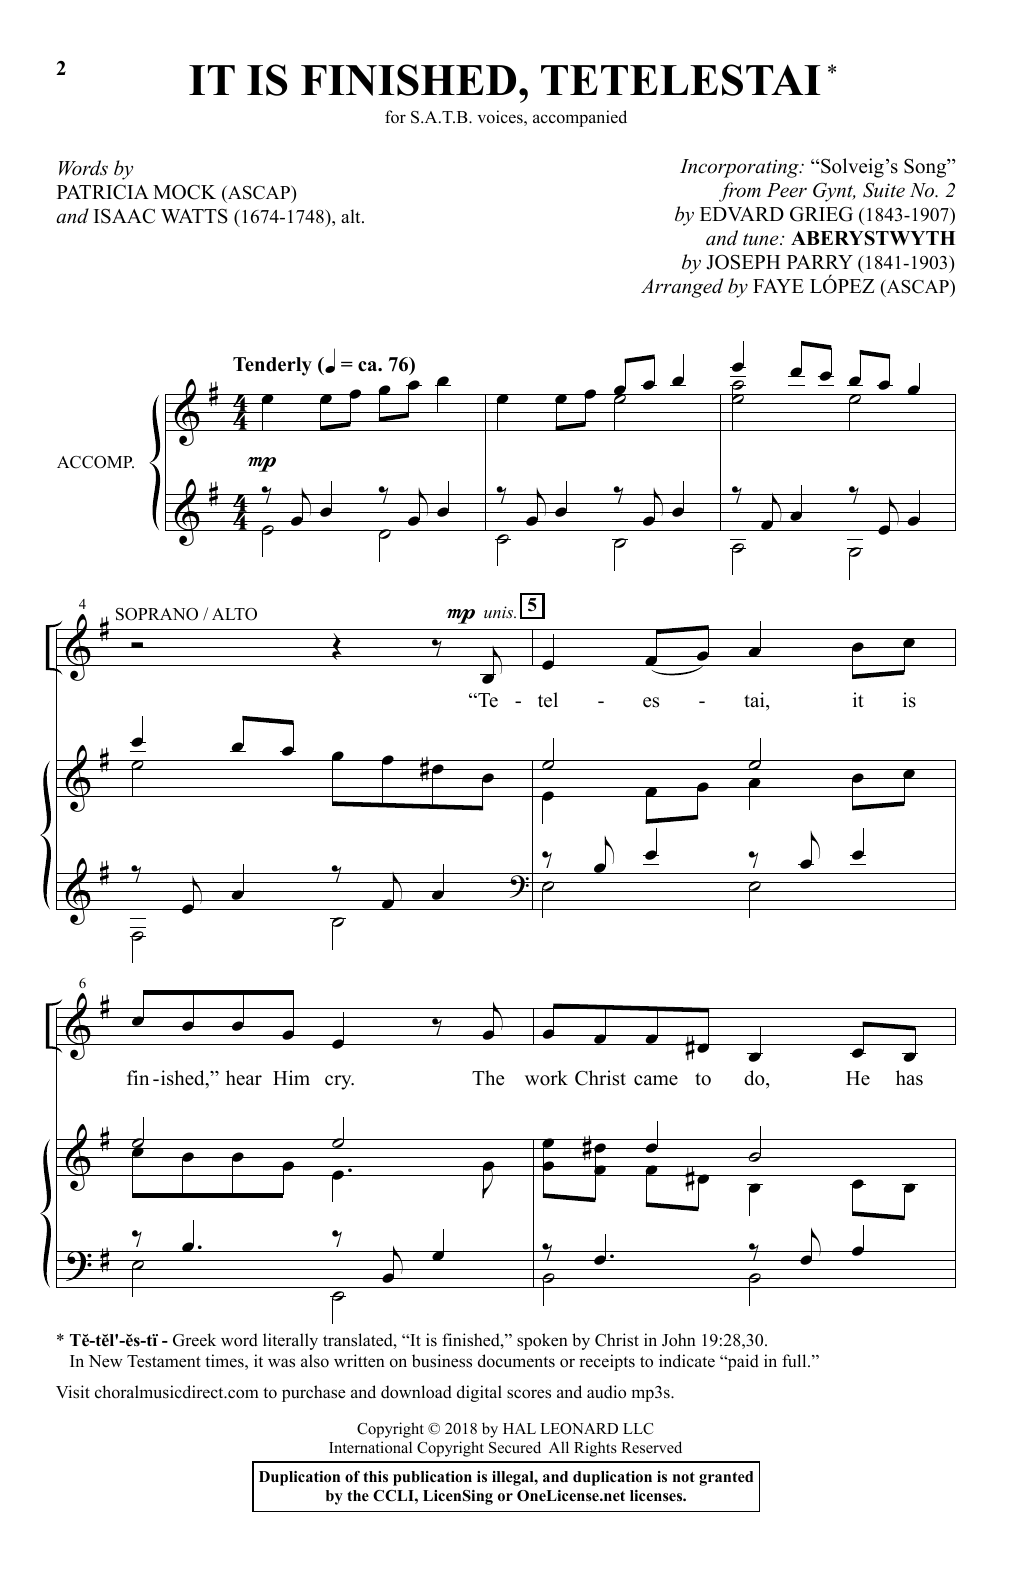 It Is Finished, Tetelestai (arr. Faye Lopez) (SATB Choir)